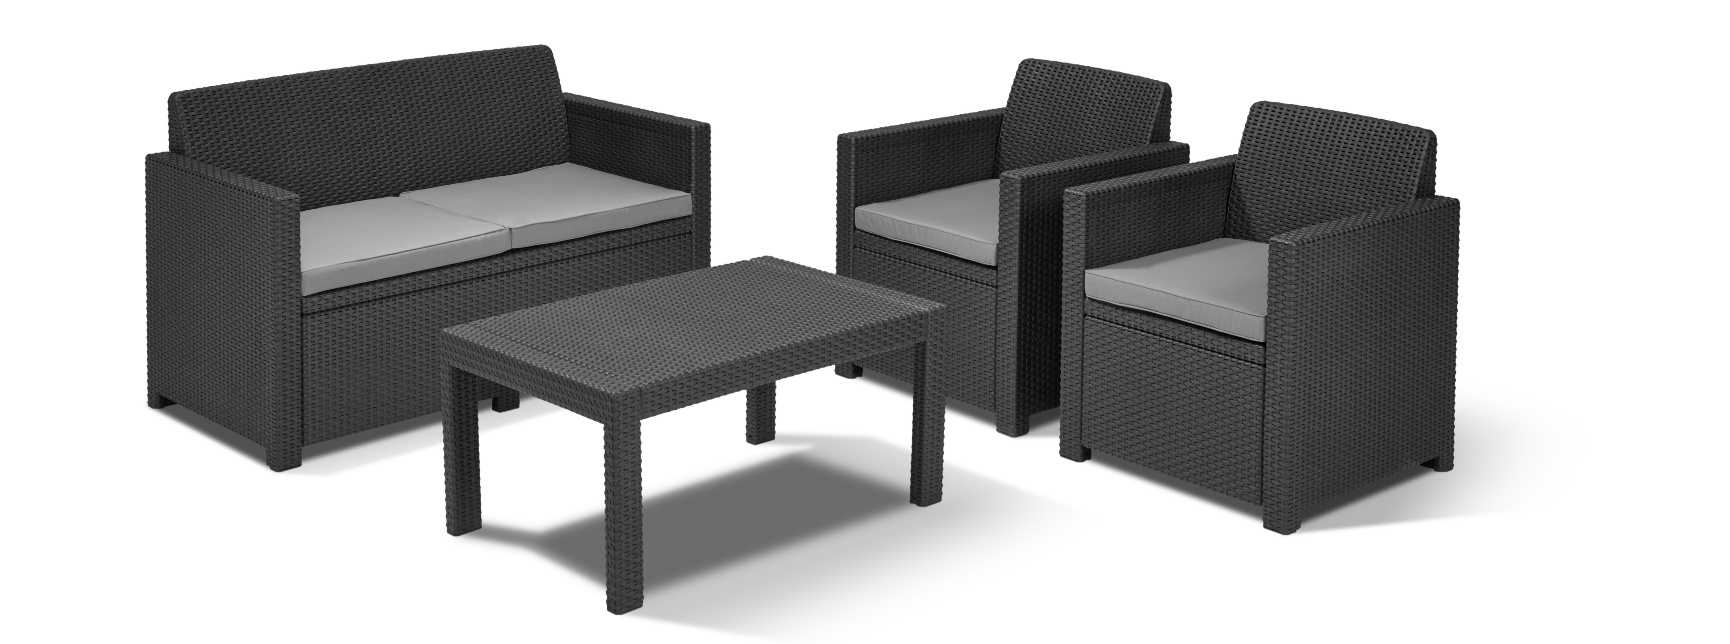 allibert merano lounge set graphite allibert. Black Bedroom Furniture Sets. Home Design Ideas